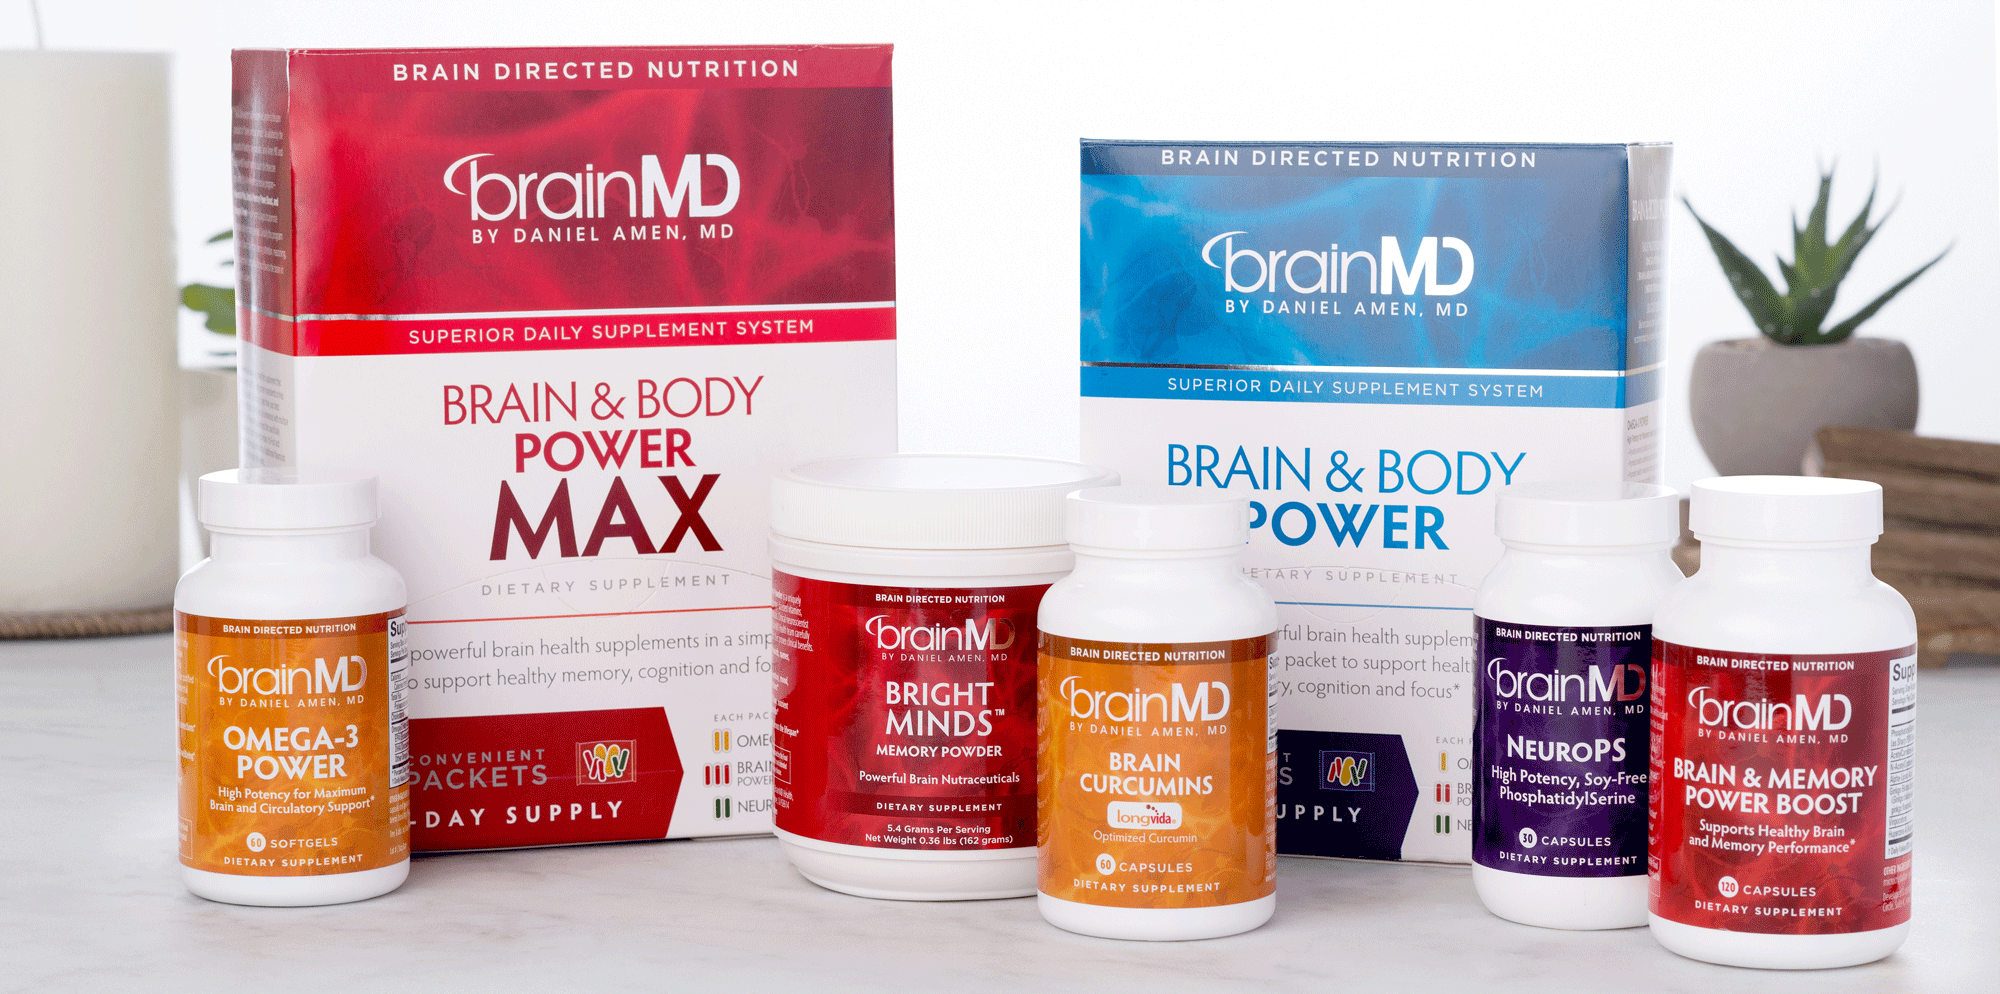 BrainMD Products